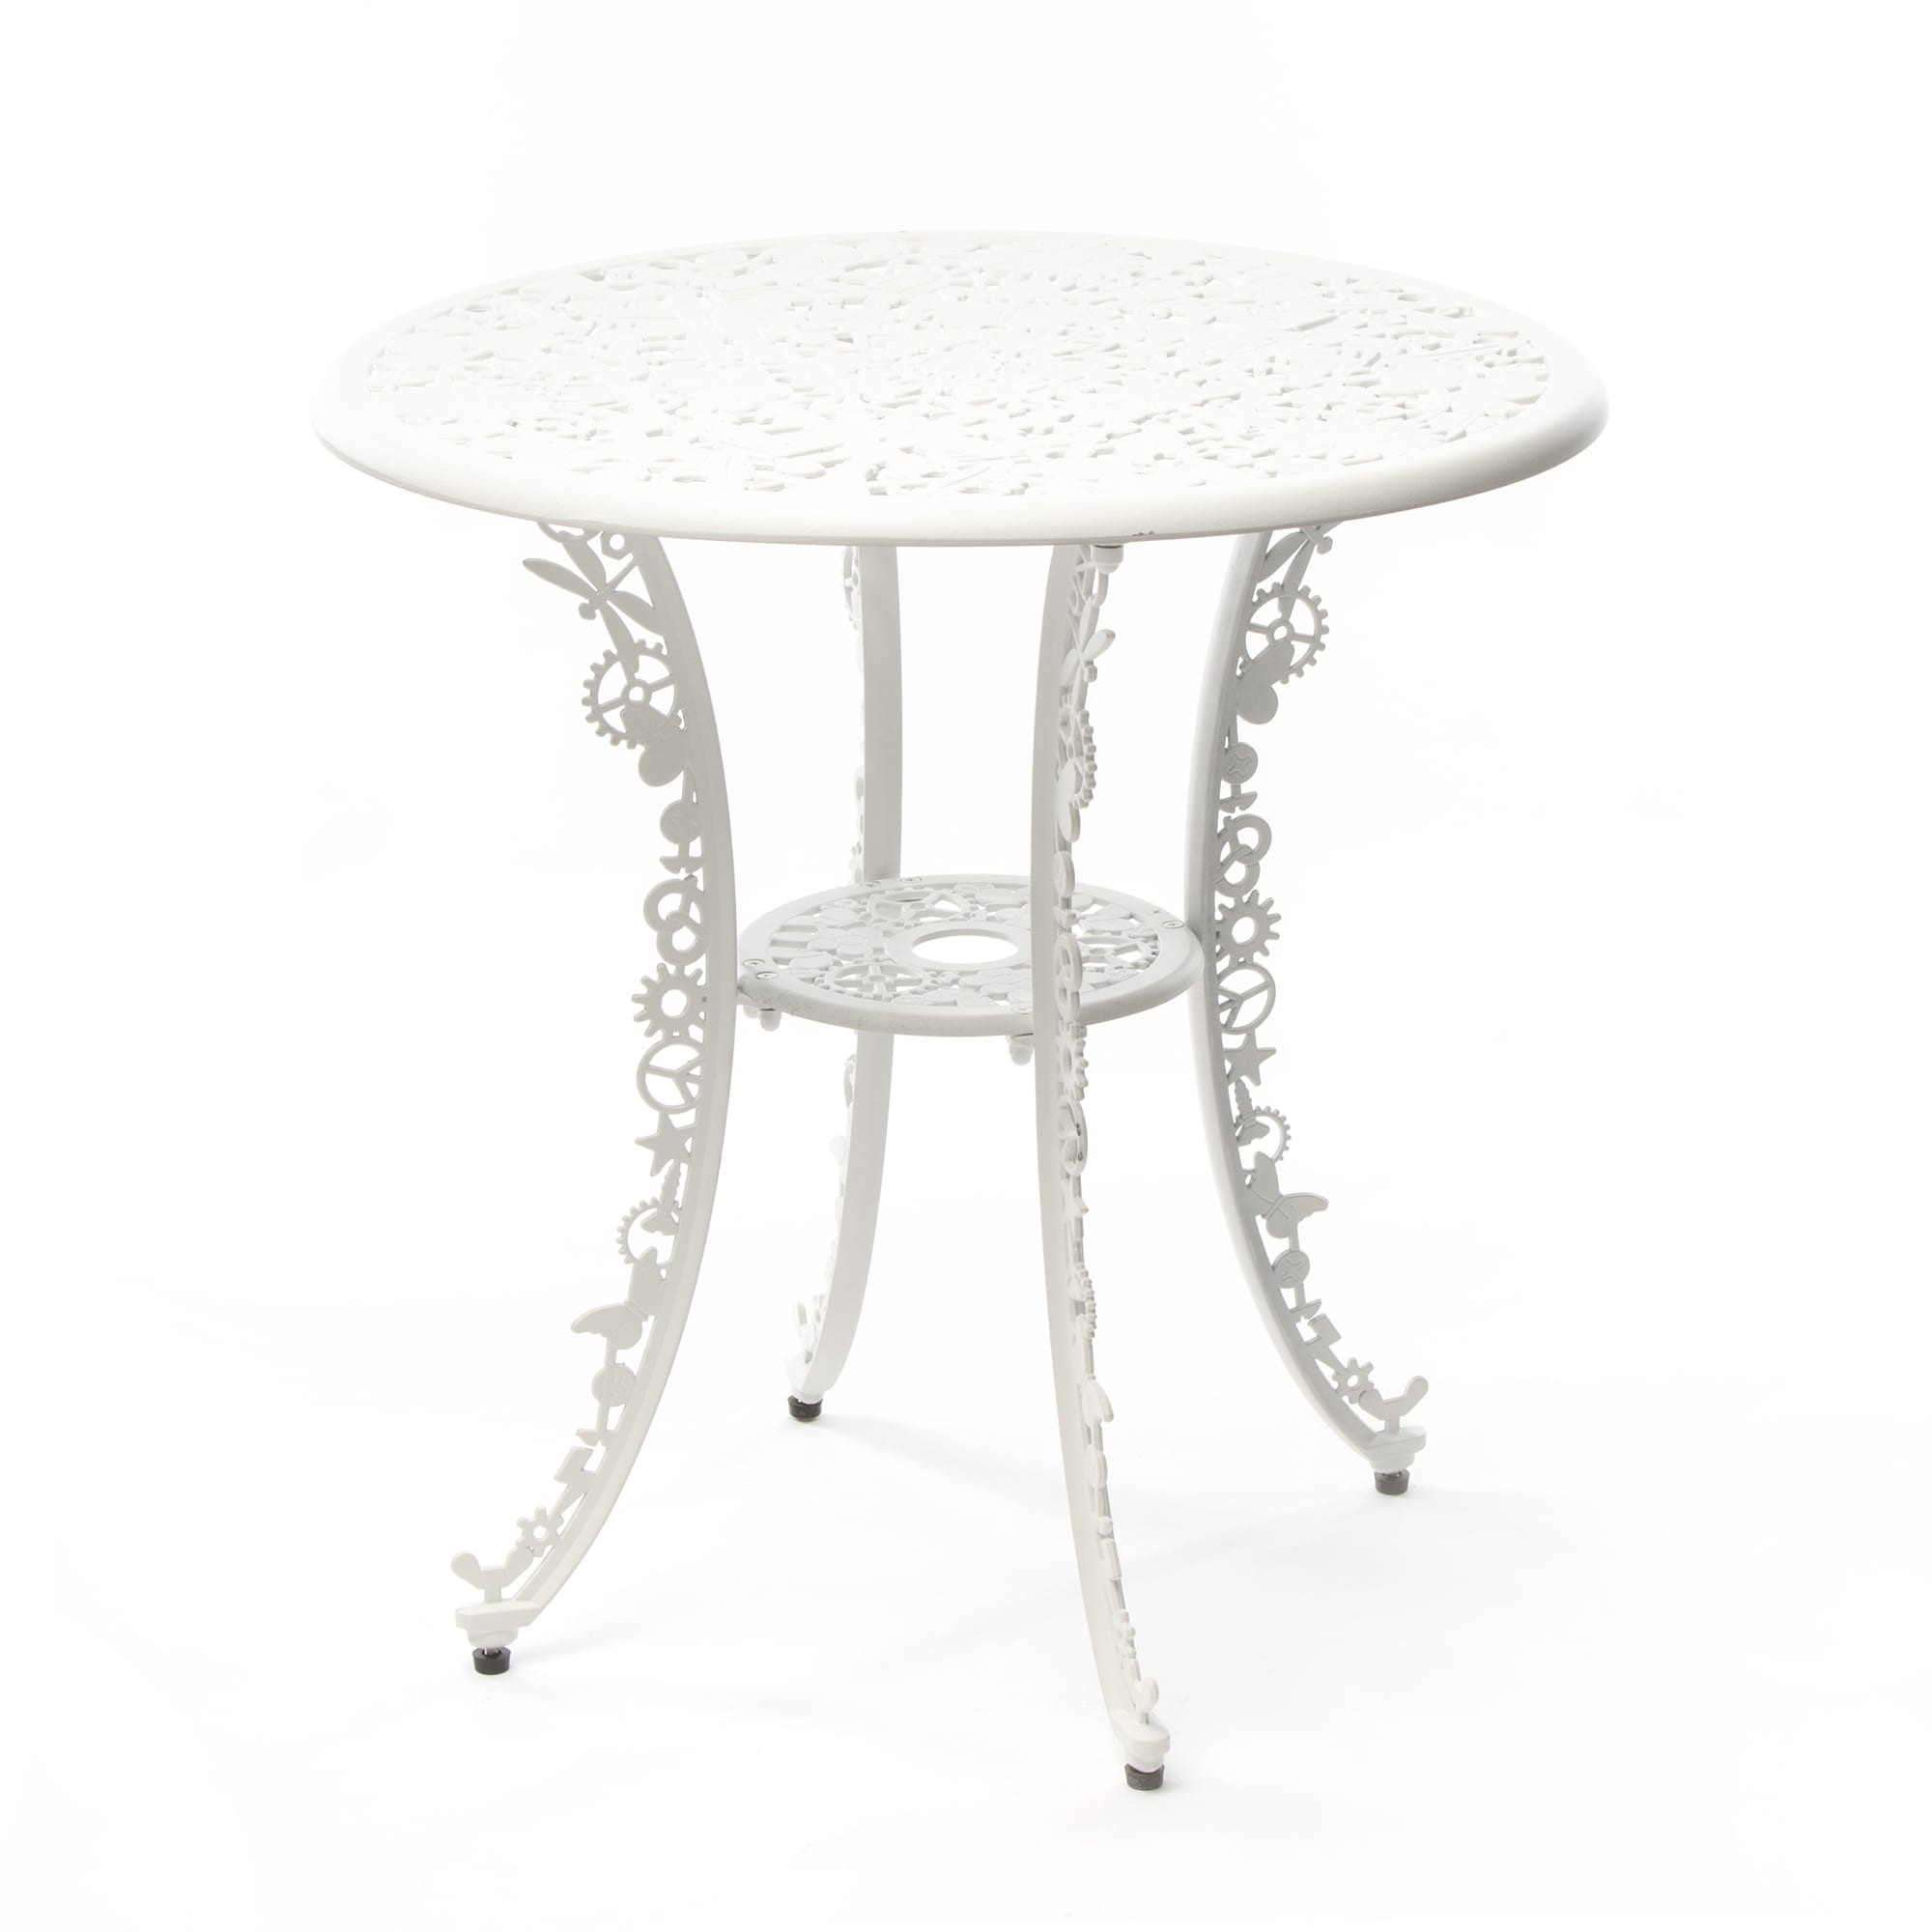 Industry Garden Seletti Round Table, White